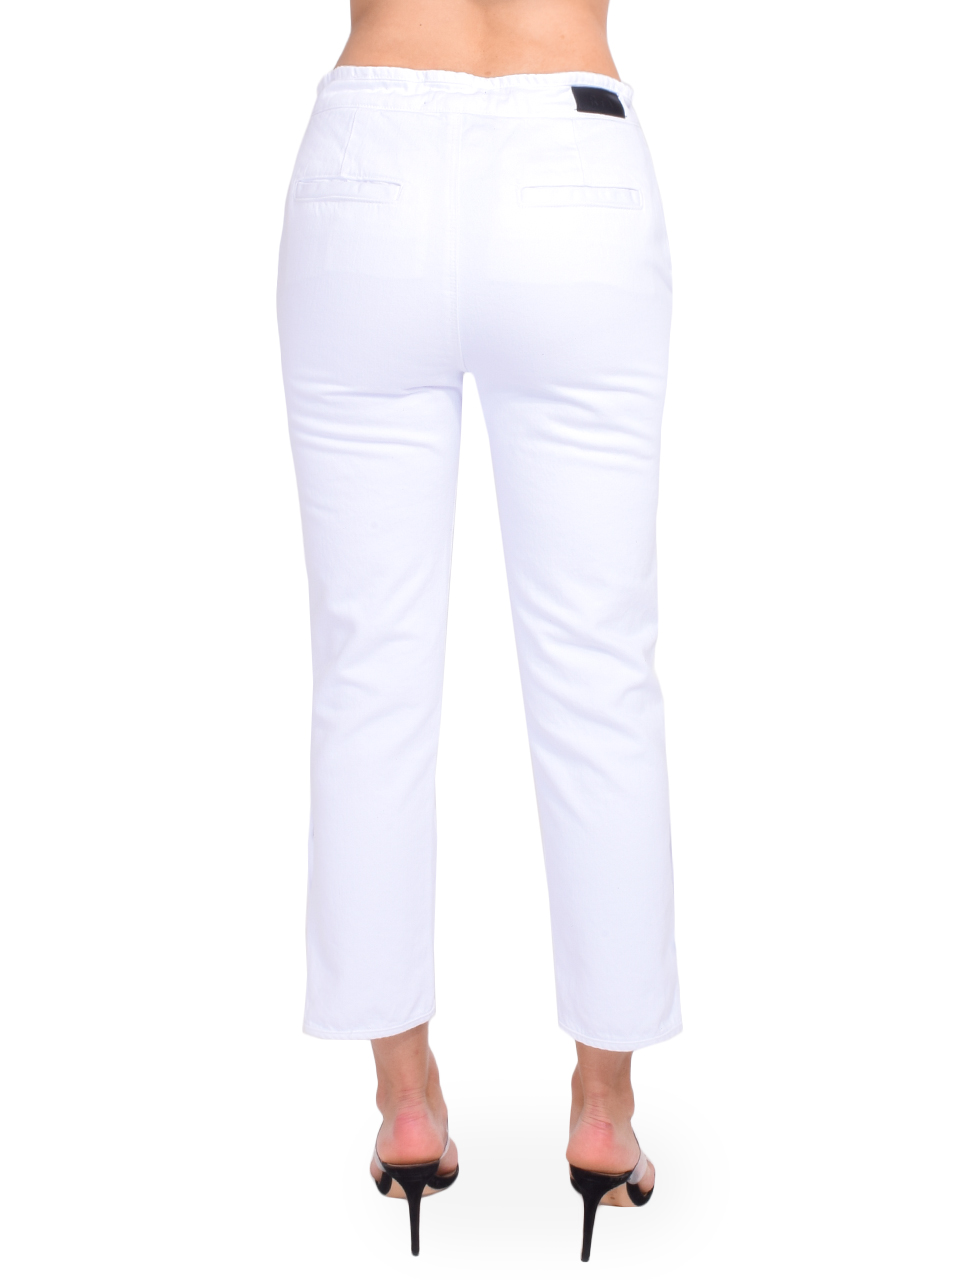 Matisse Pants in Optic White Back View